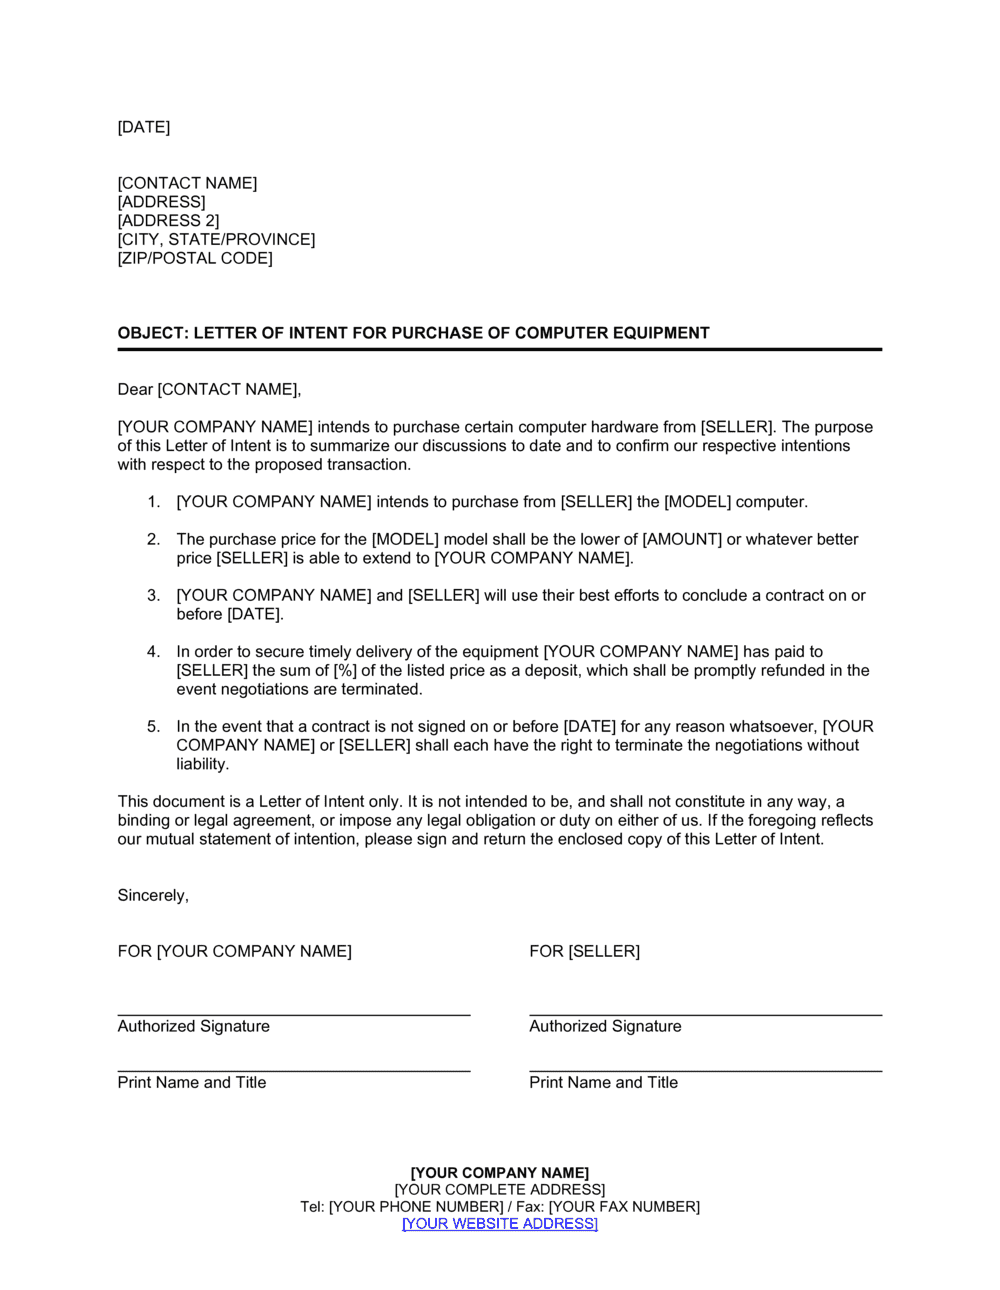 Letter Of Intent For Purchase Of Computer Equipment Template By Business In A Box